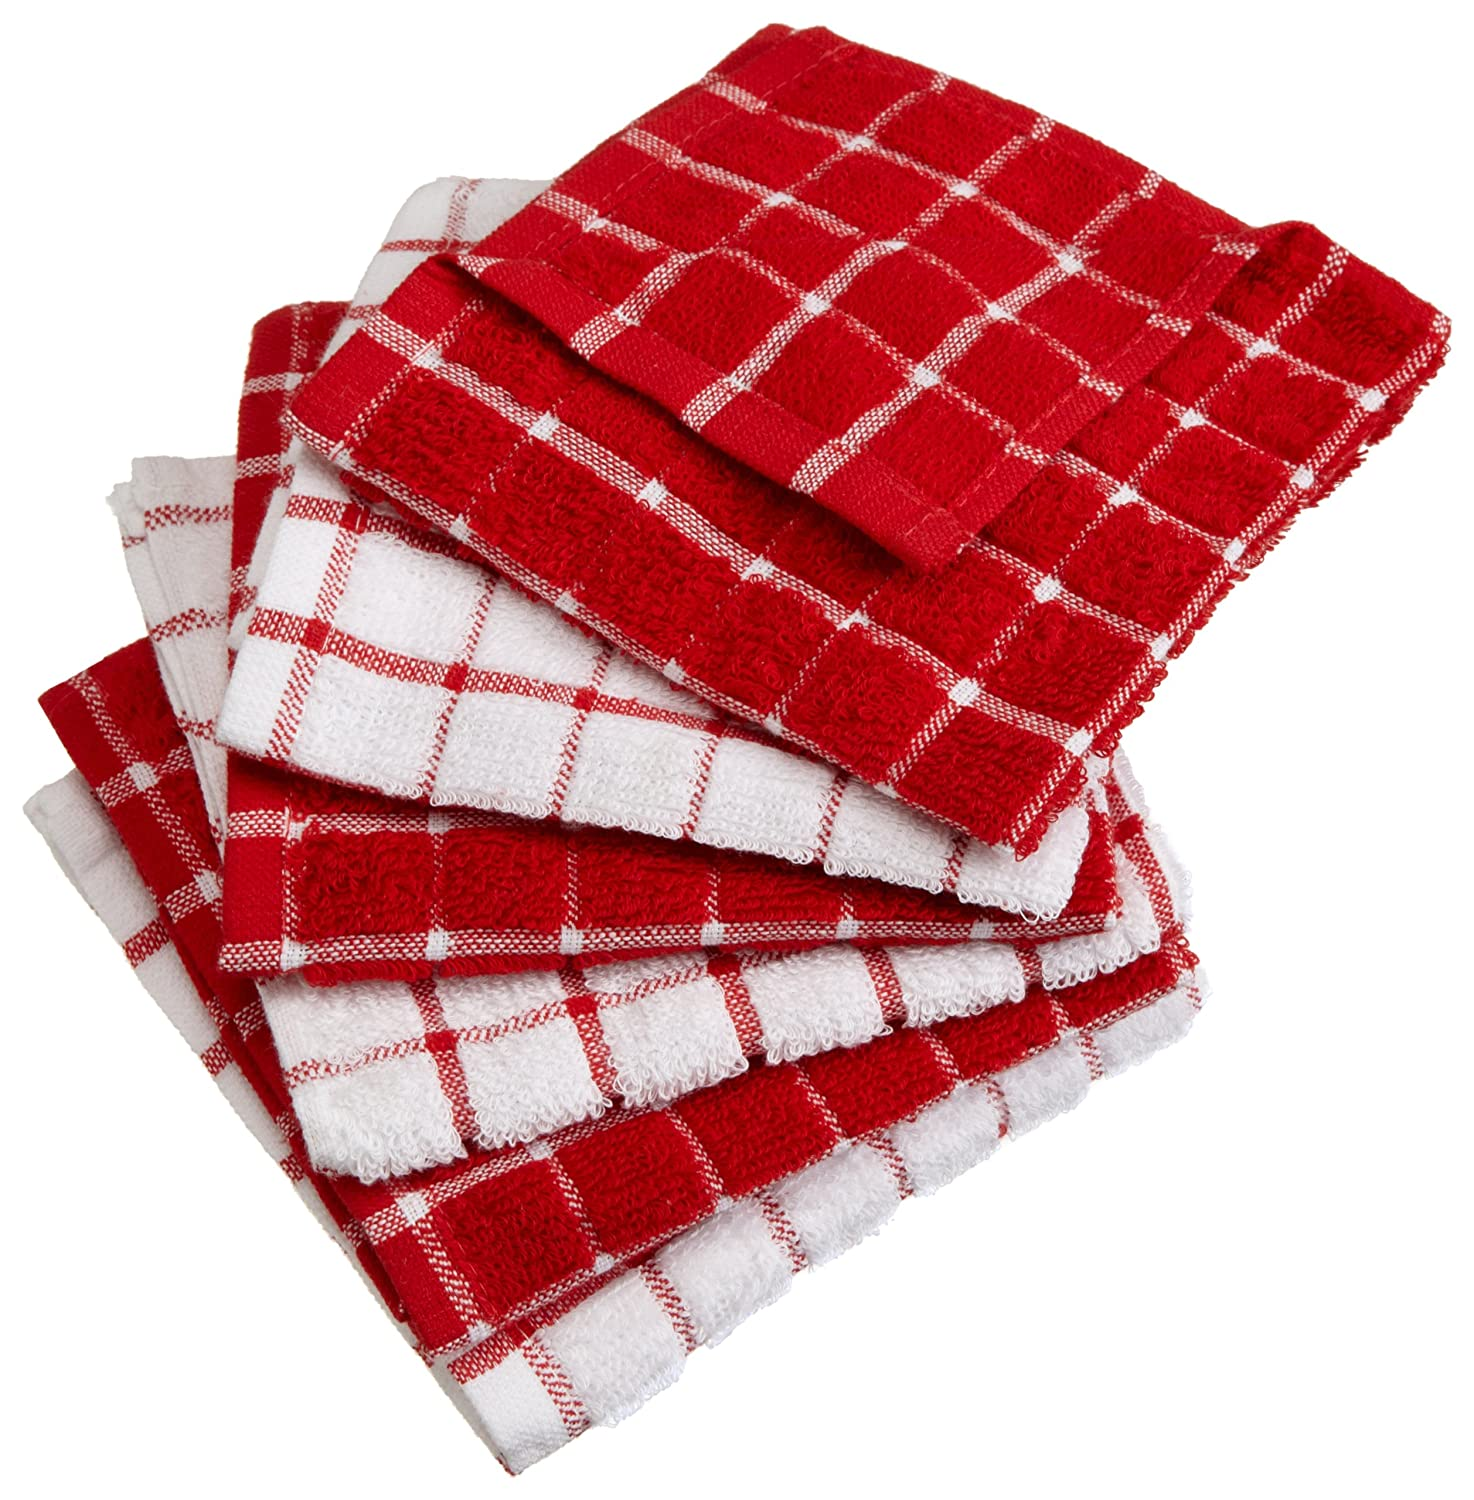 "DII 100% Cotton, Machine Washable, Basic Everyday Kitchen Dish Cloth, Windowpane Design, 12 x 12"" Set of 6- Red"